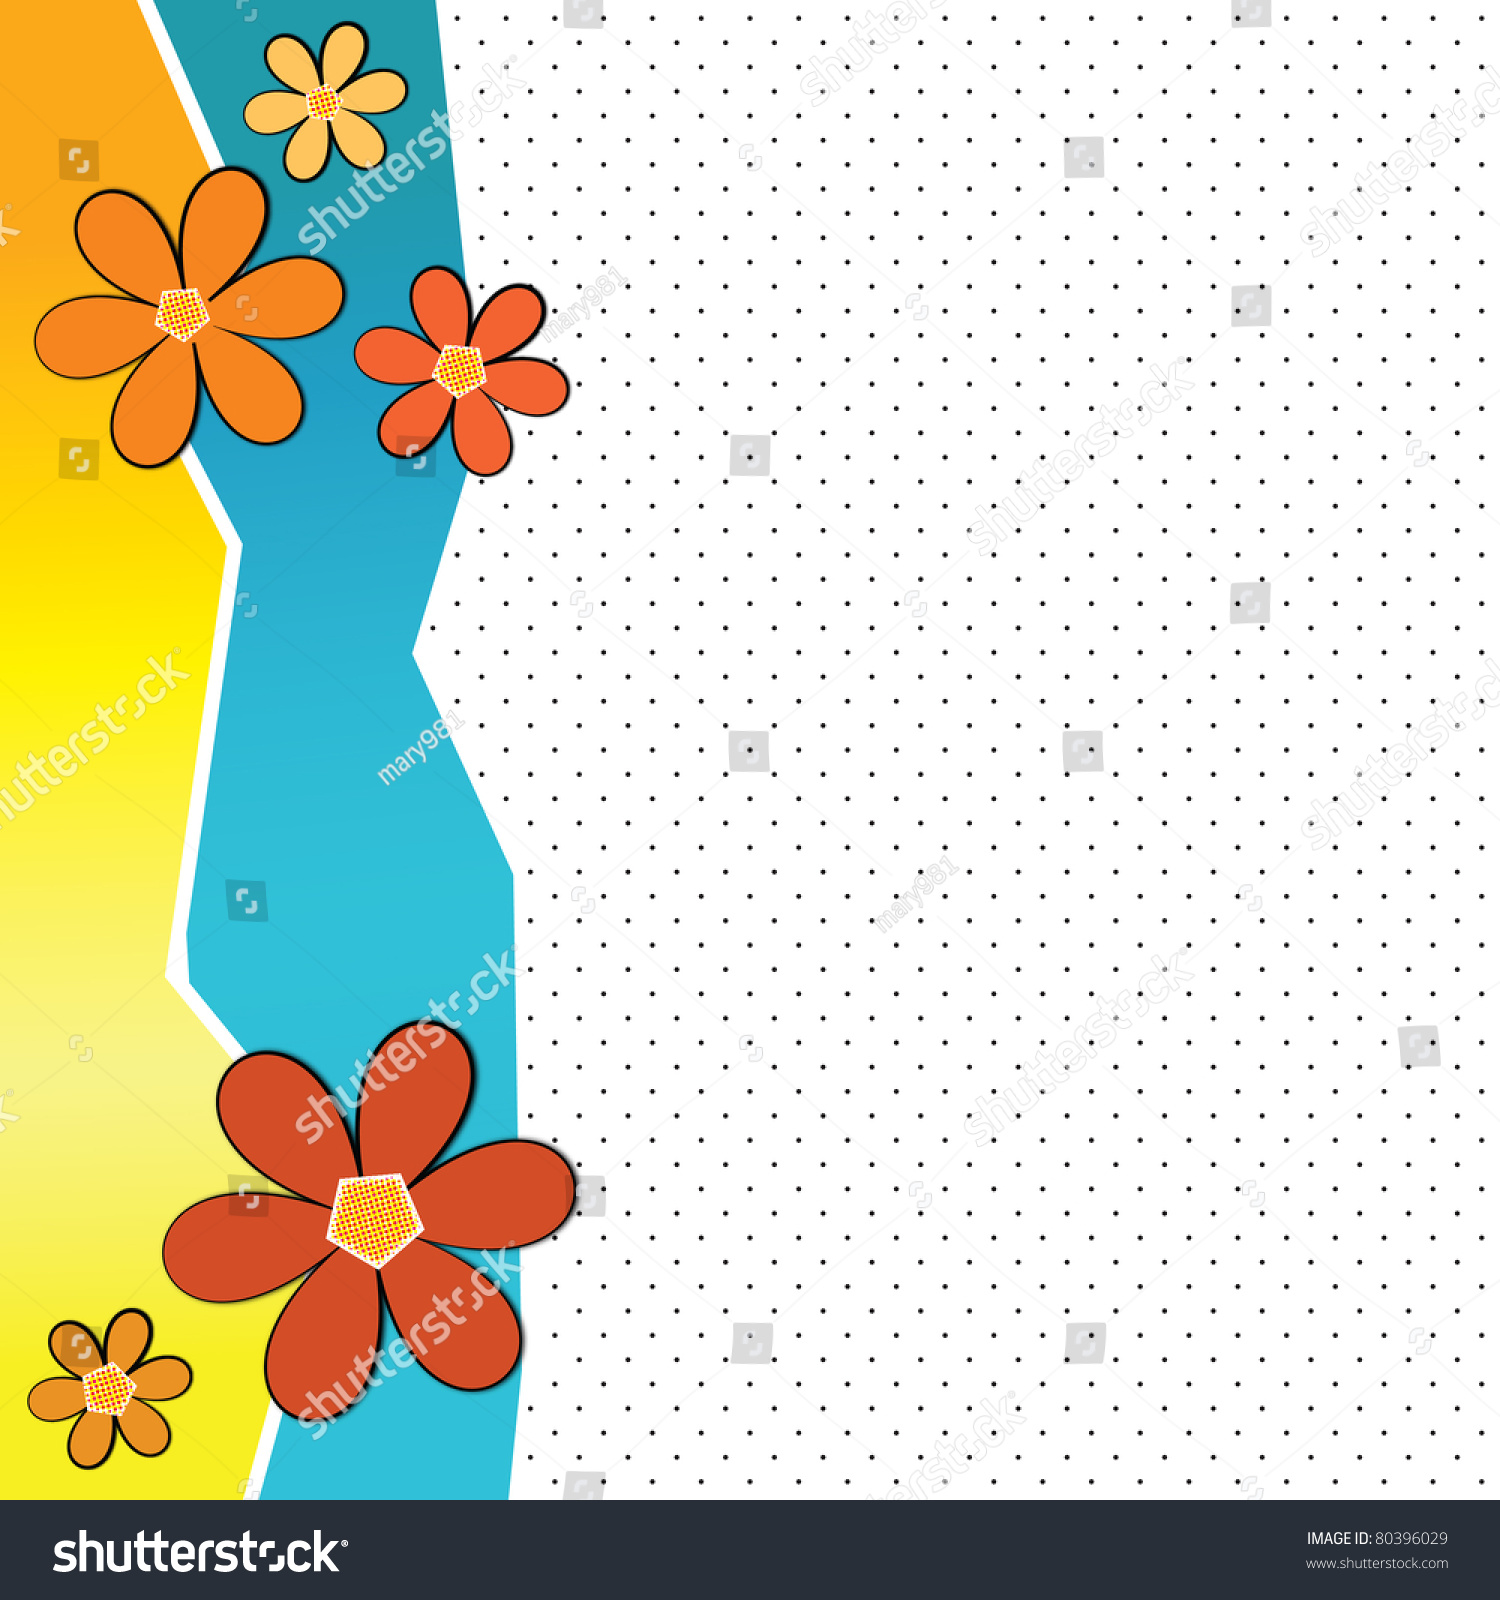 Simple Flower Background Images